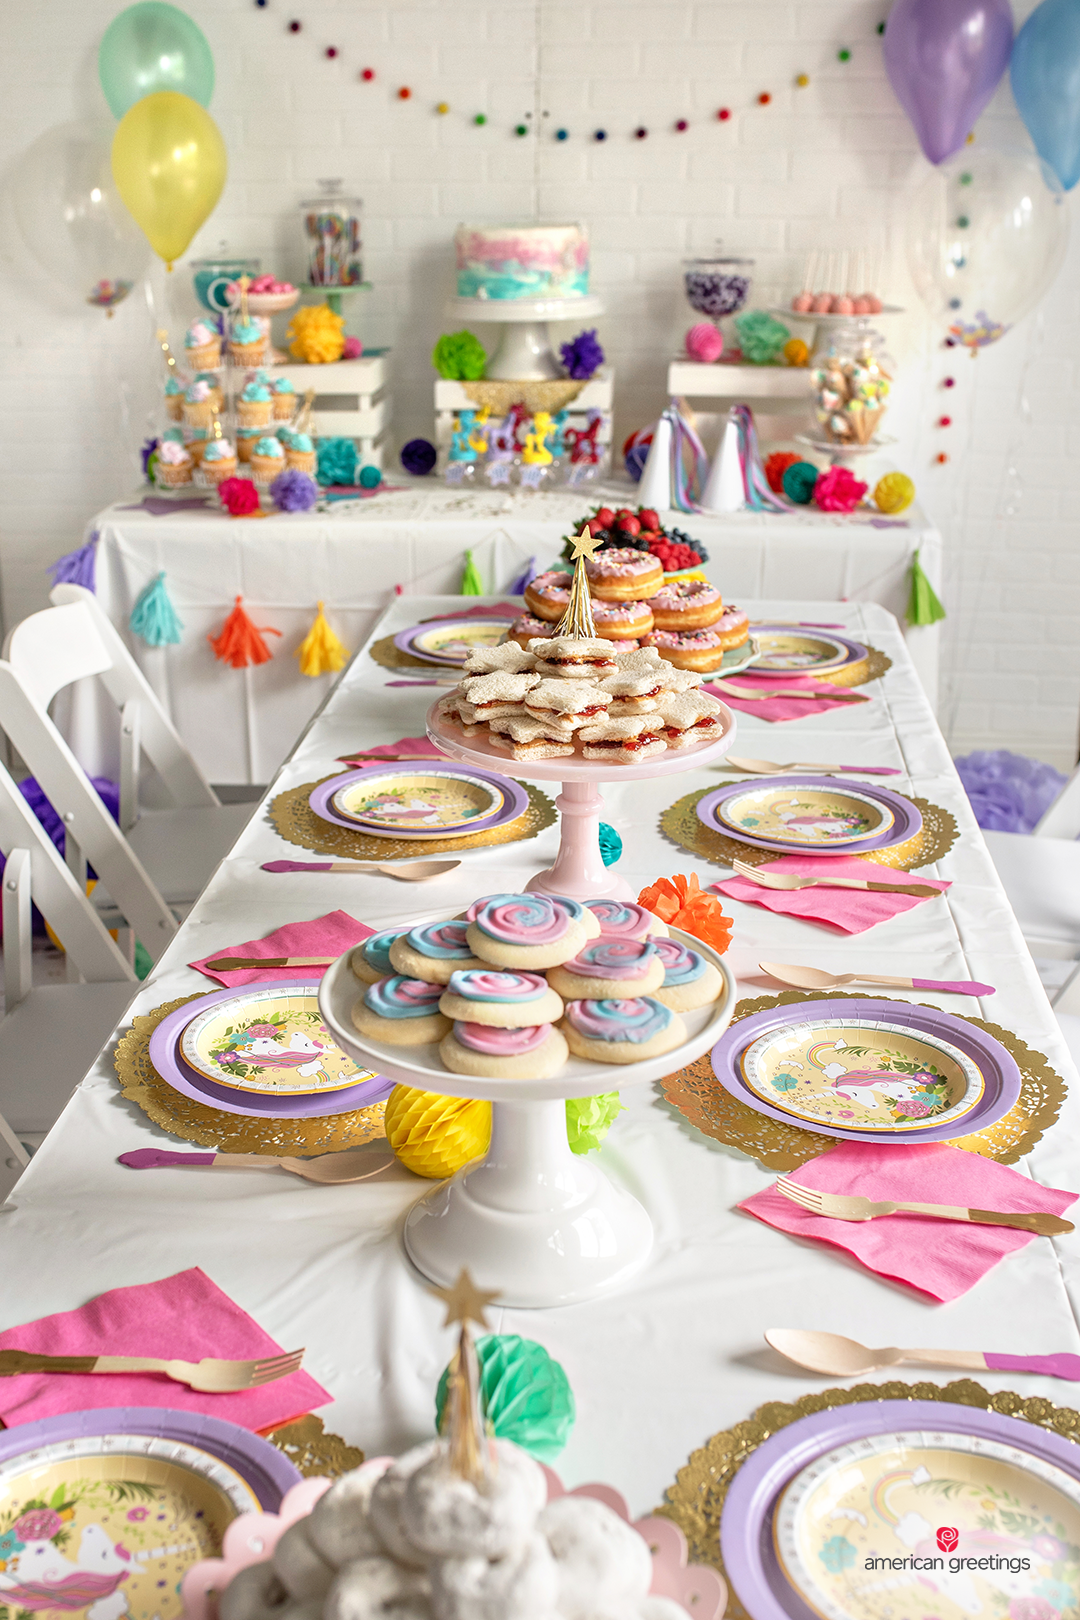 Dinner table with white tablecloth and unicorn plates, gold and pink cutllery and a lot of donuts, fruits and cakes plates.